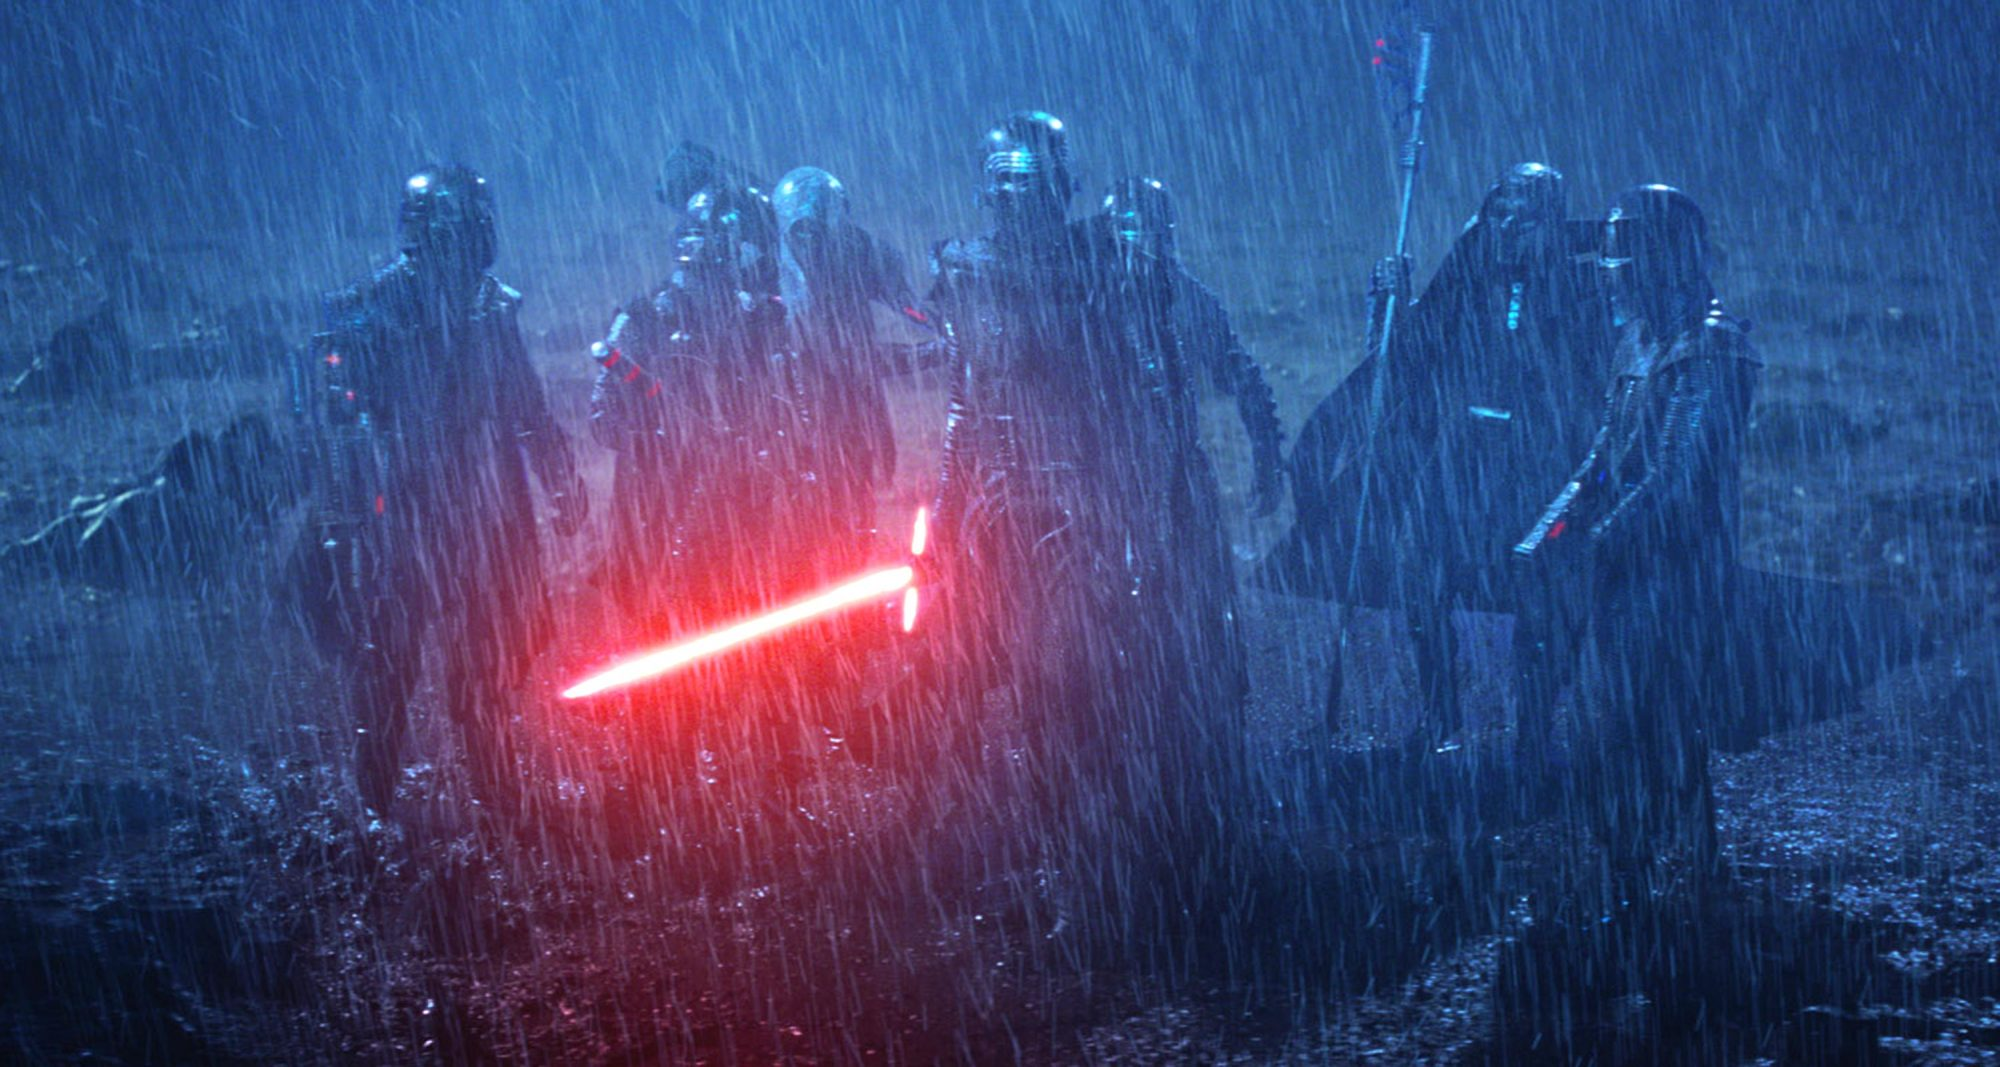 STAR WARS: THE FORCE AWAKENS, (aka STAR WARS: EPISODE VII - THE FORCE AWAKENS), Adam Driver, as